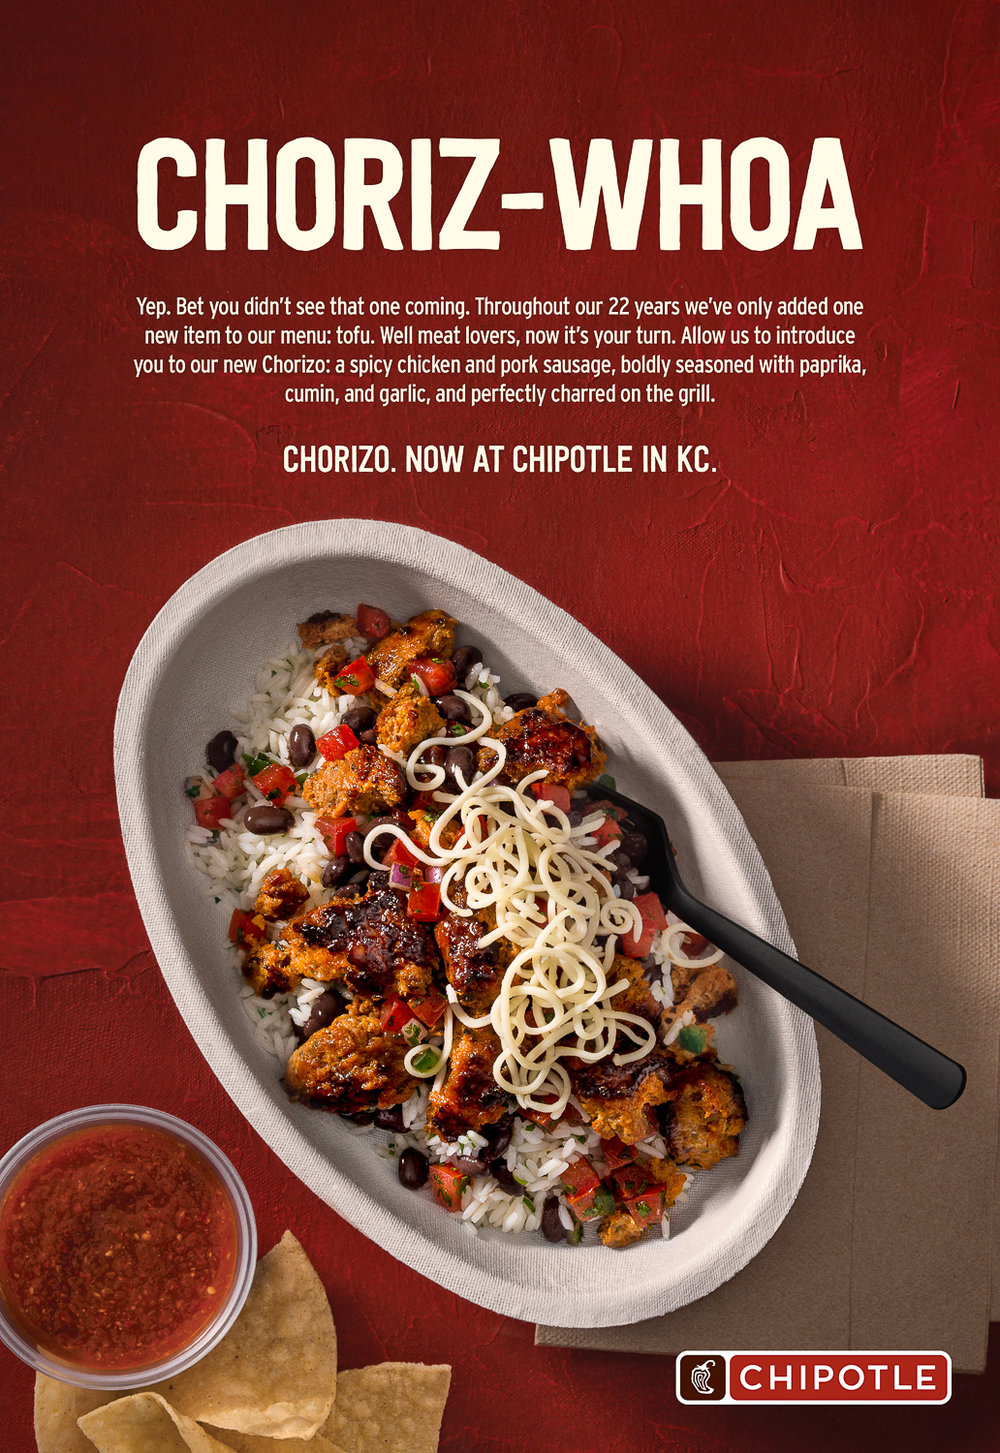 chipotle_20150716_Chorizo_fullpage_ad_Hires_ft.jpg